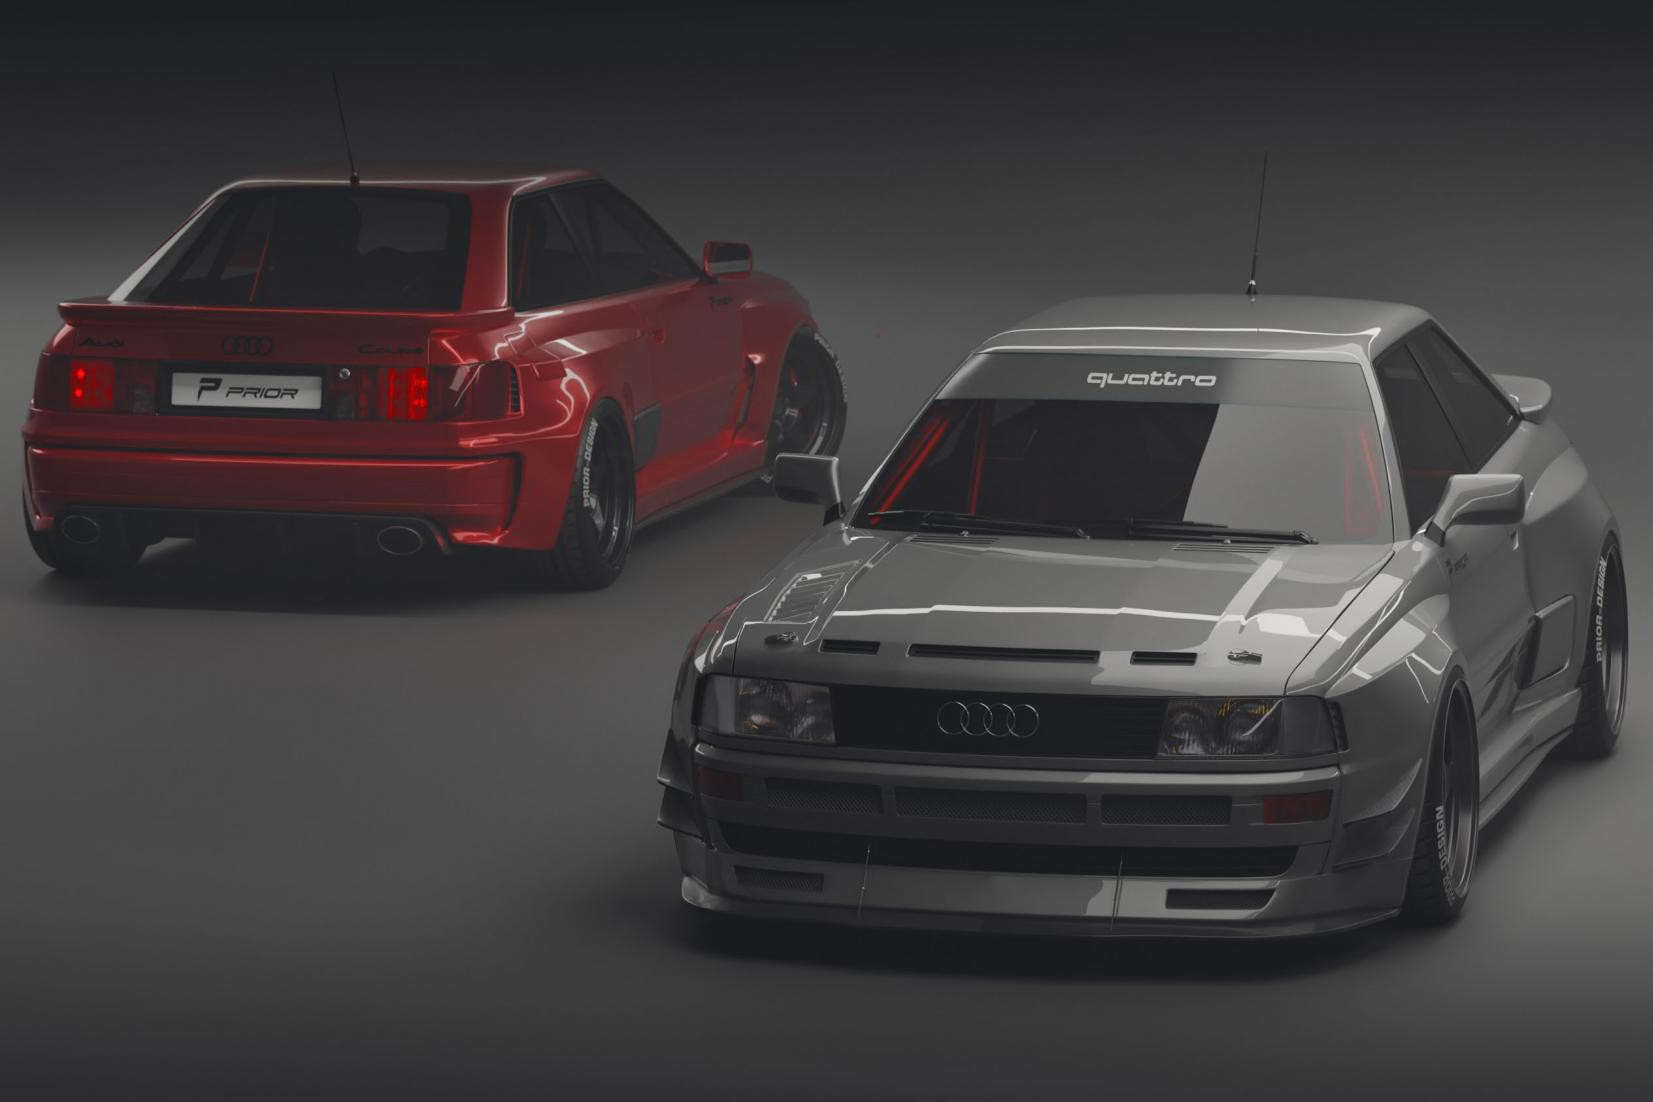 prior-design-audi-coupe-b3-1988-wide-bodykit-conversion-tuning-modified-limited-edition-1.jpg